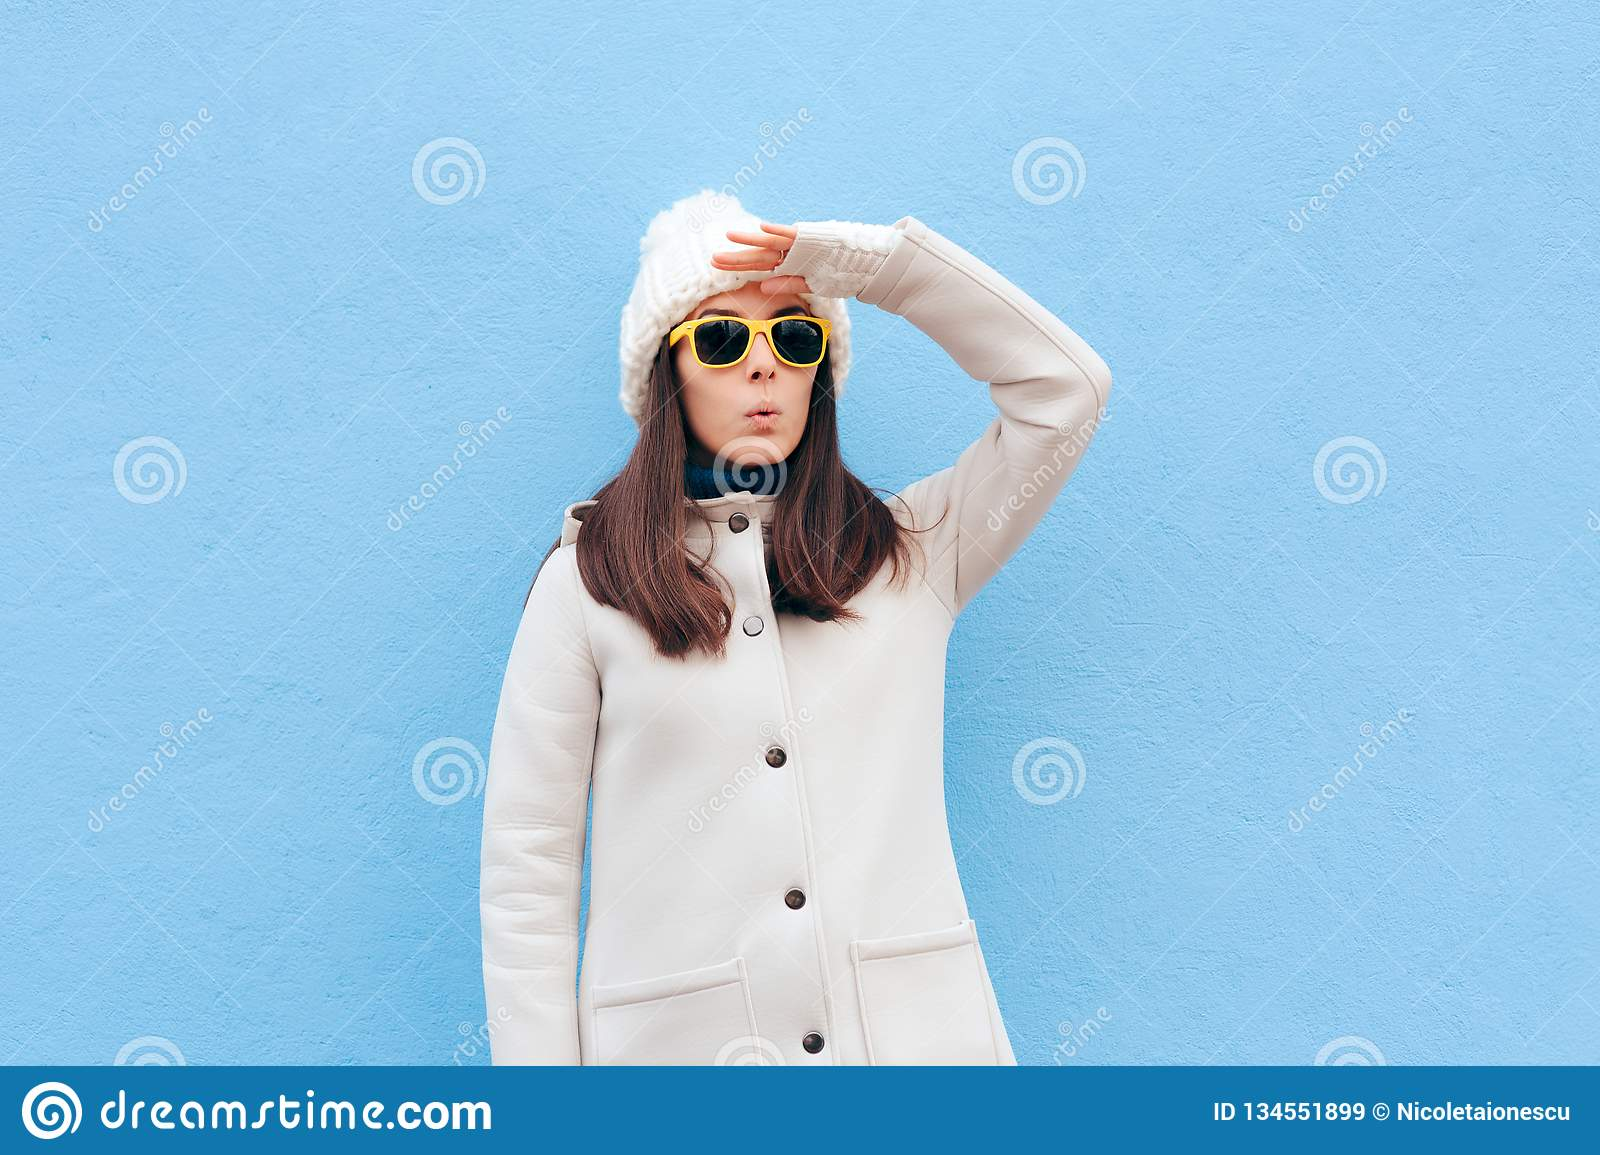 Curious Woman With Sunglasses Searching for Something